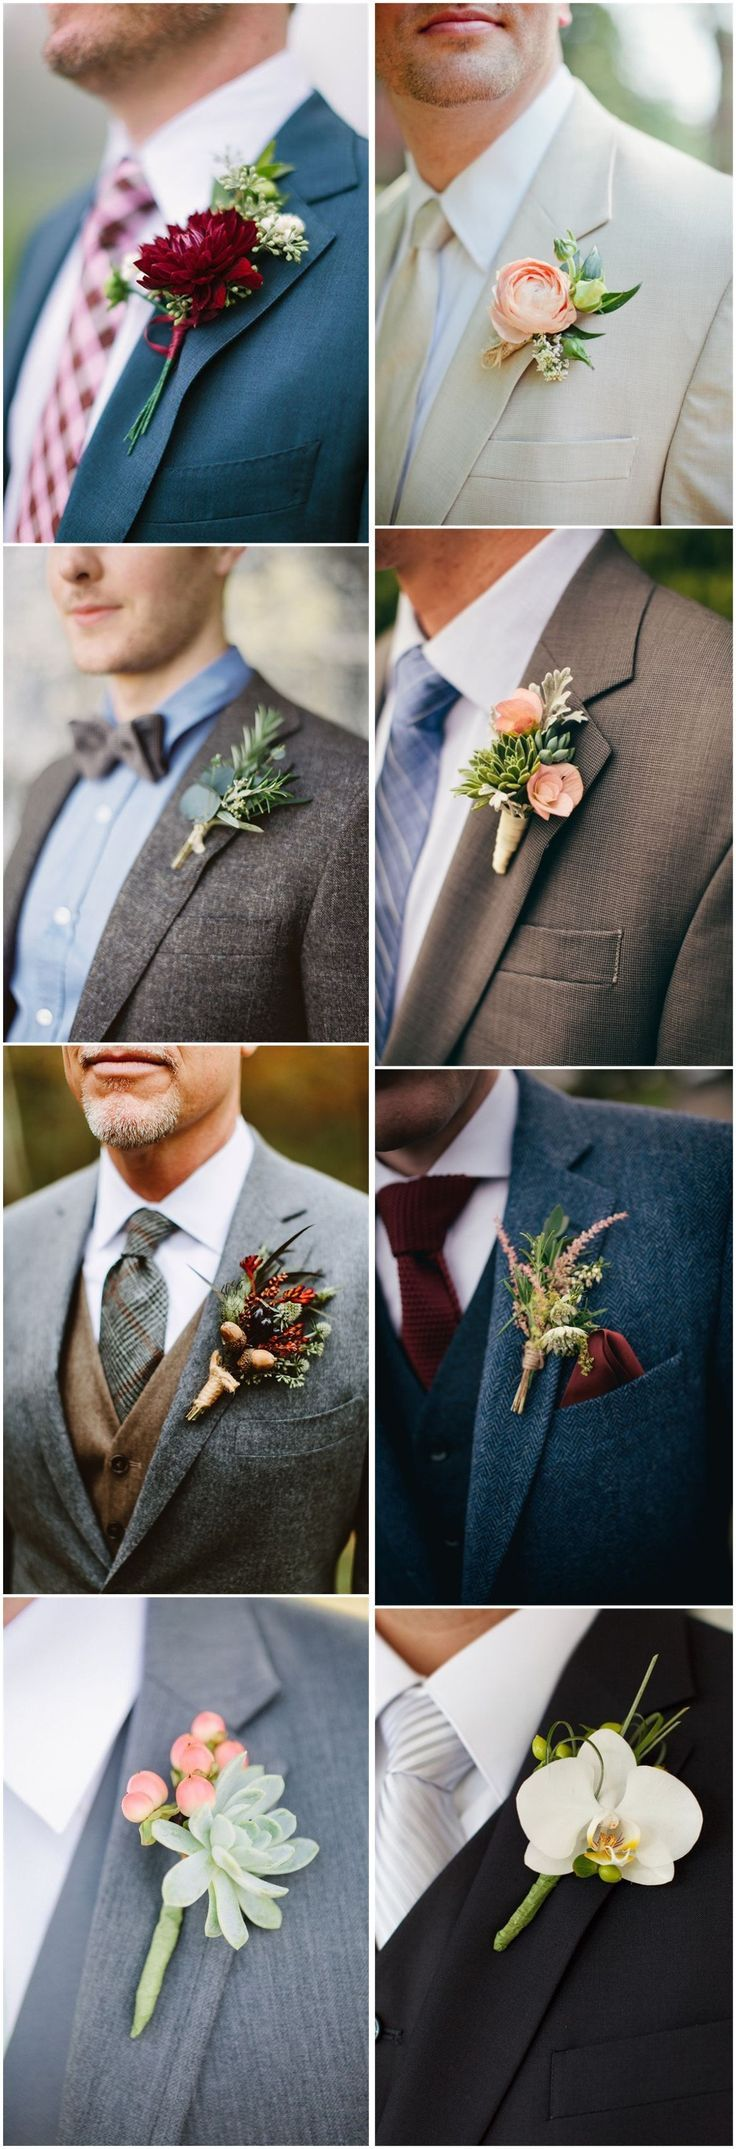 Wedding Ideas » Wedding Boutonniere » 23 Wedding Boutonniere Ideas You Cannot Resist! ❤️See more: